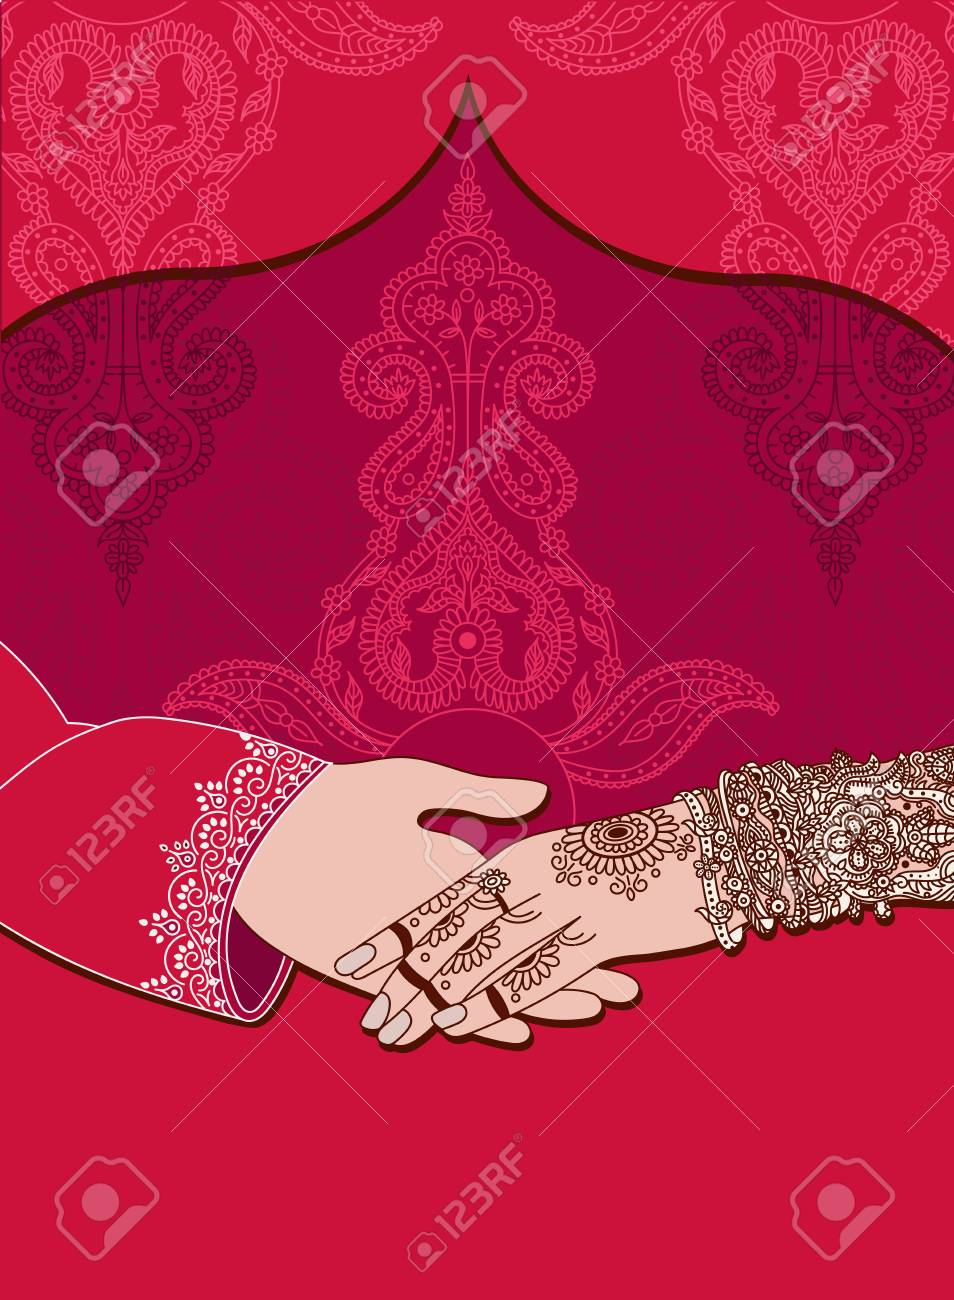 Wedding indian invitation card on red background india marriage vector wedding indian invitation card on red background india marriage templateautifully decorated indian bride handose up of groom holding brides stopboris Images